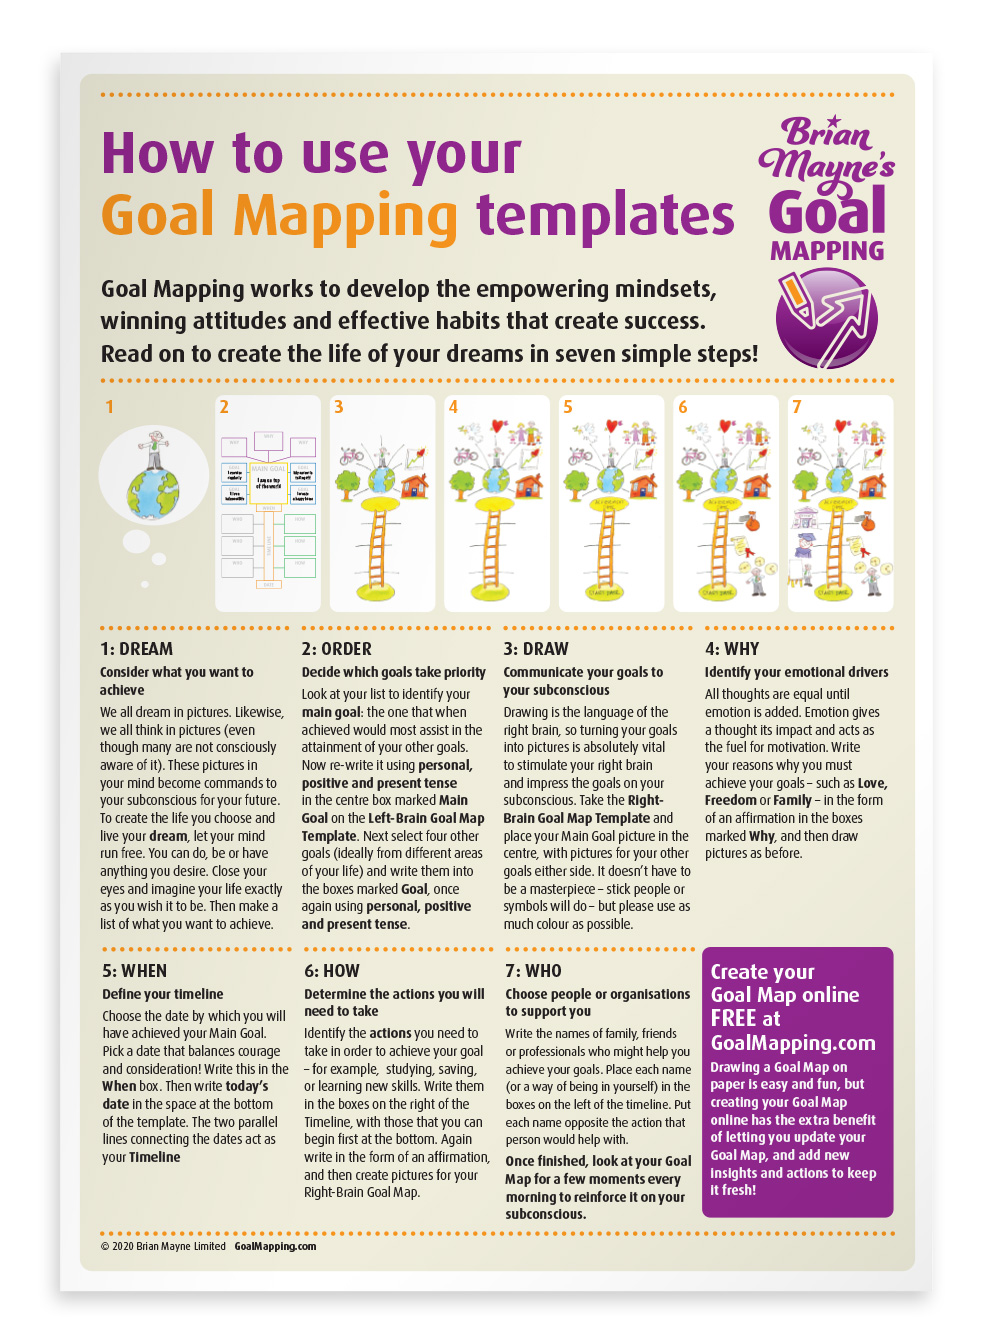 Instructions for using Goal Mapping templates